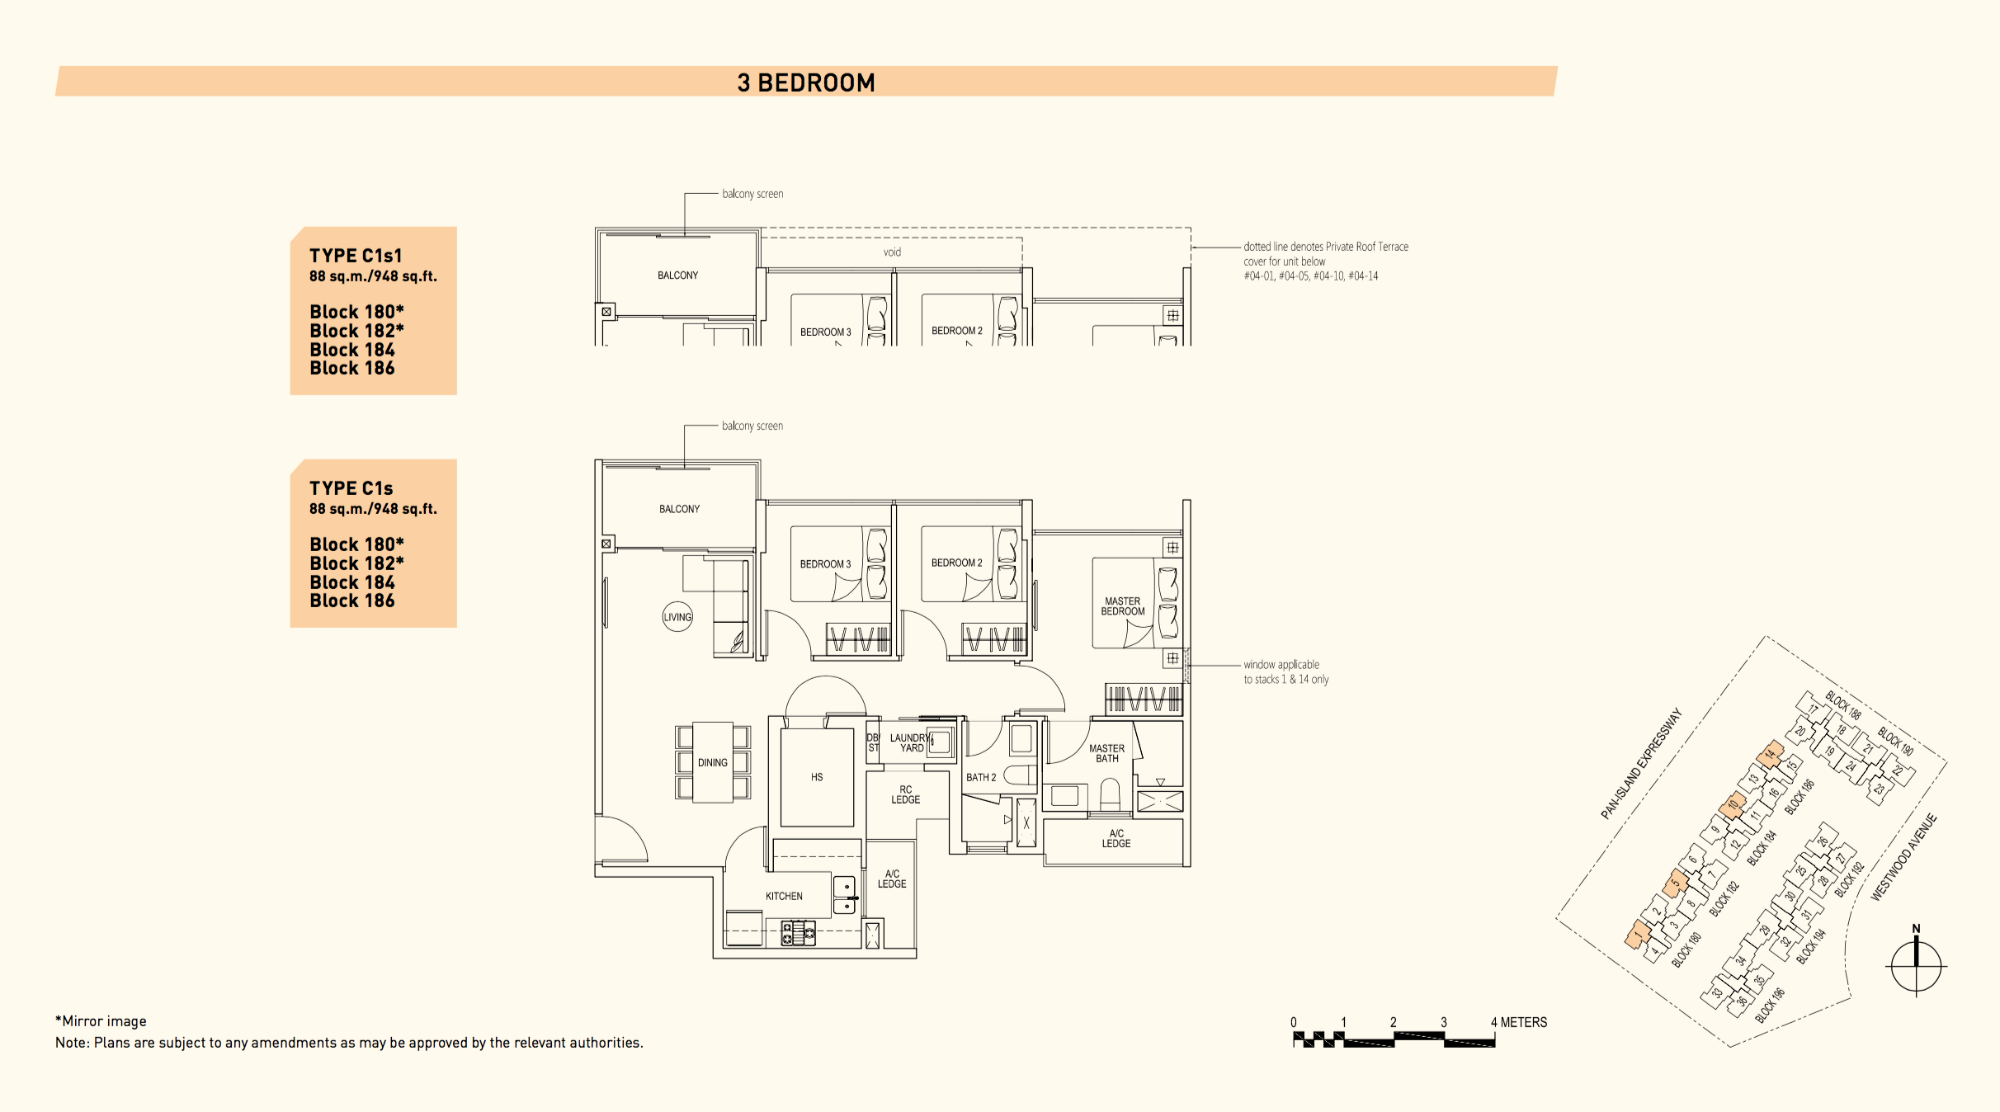 Westwood Residences EC Floor Plan 3 Bedroom C1s 88 sqm 948 sqft